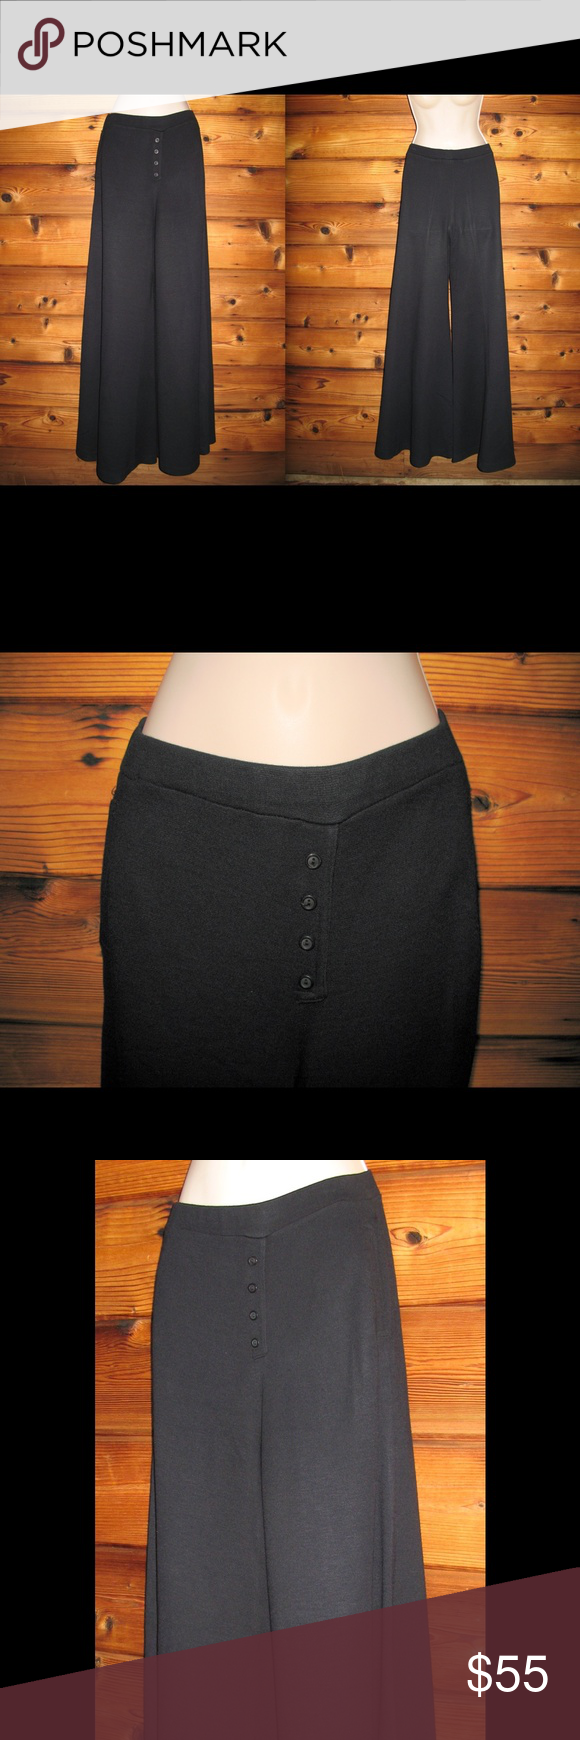 "Joshua Tree California Boho EXTRA Wide Leg Pants Joshua Tree California Boho EXTRA Wide Leg Elastic Waist Thick Knit Pants, Size XS  *Excellent condition. No size or material tags  Details: Joshua Tree Color: Black Size: XS Pull-on style Heavy, thick knit Elastic waist Two front, lined pockets Decorative front button detail Extra wide legs Material unknown Hand or Machine wash delicate  Measurements: Waist: 26-32 Hips: 34"" Leg Opening: 50"" Joshua Tree California Pants Wide Leg"